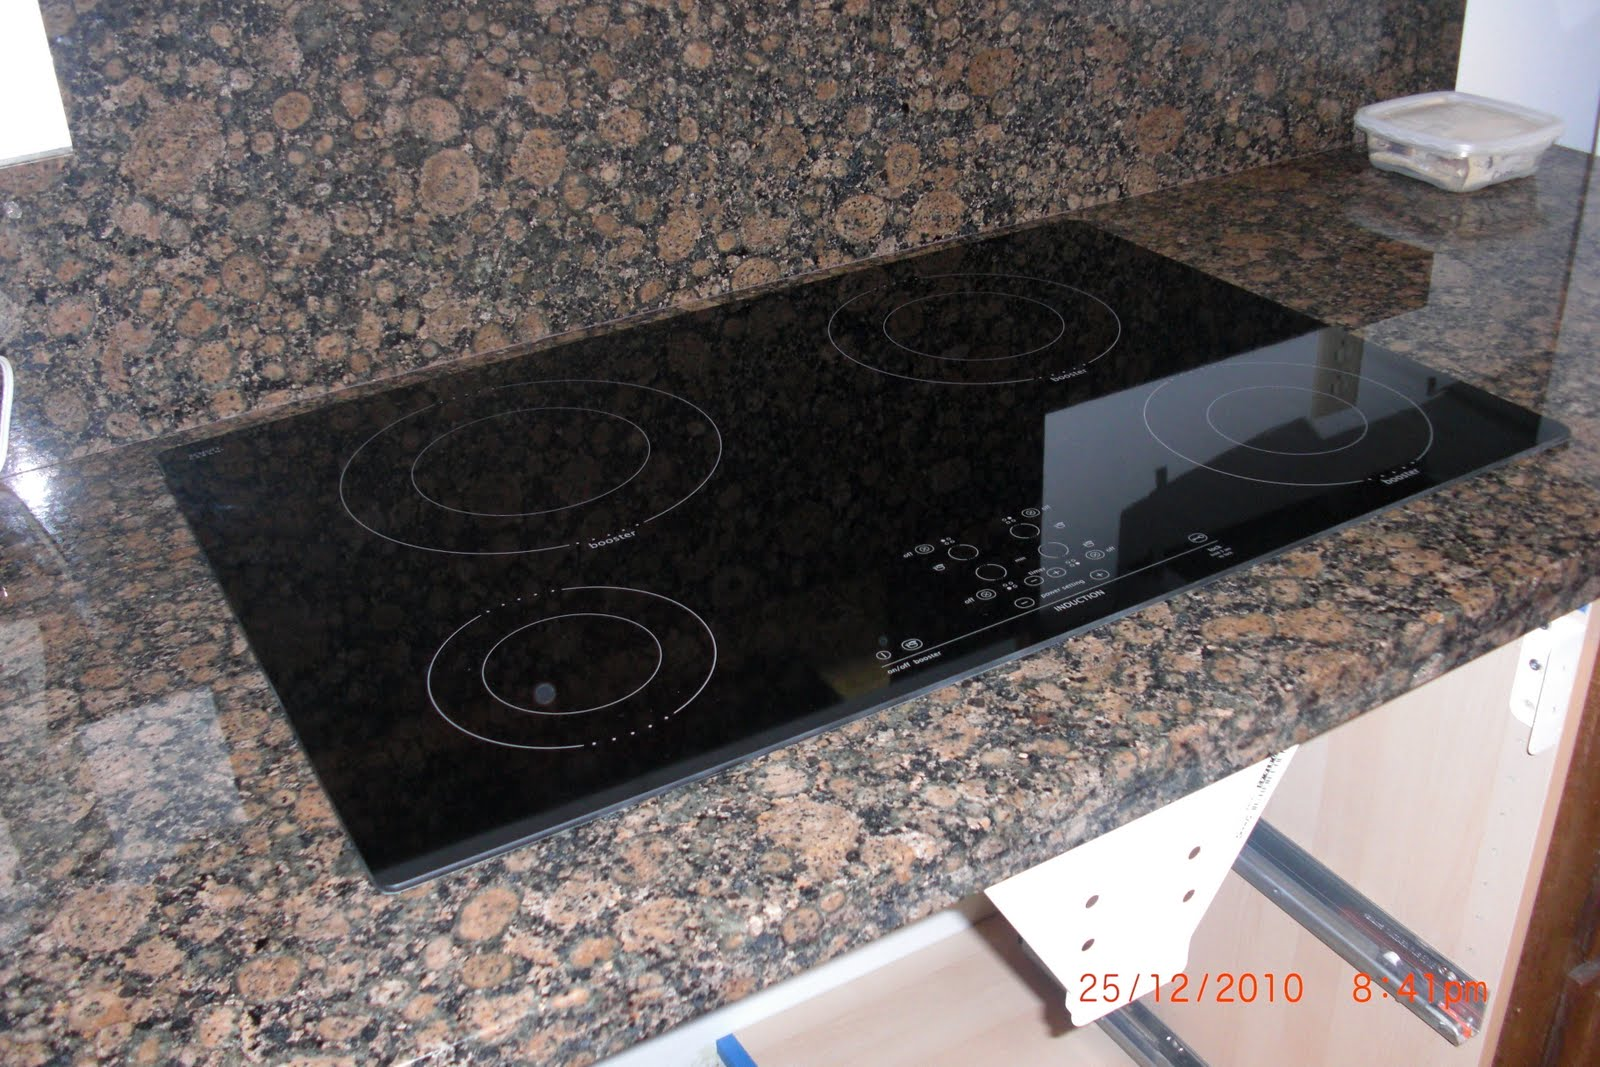 Gas Cooktop Installation Induction Cooktop Installation Download Free Notesbackup